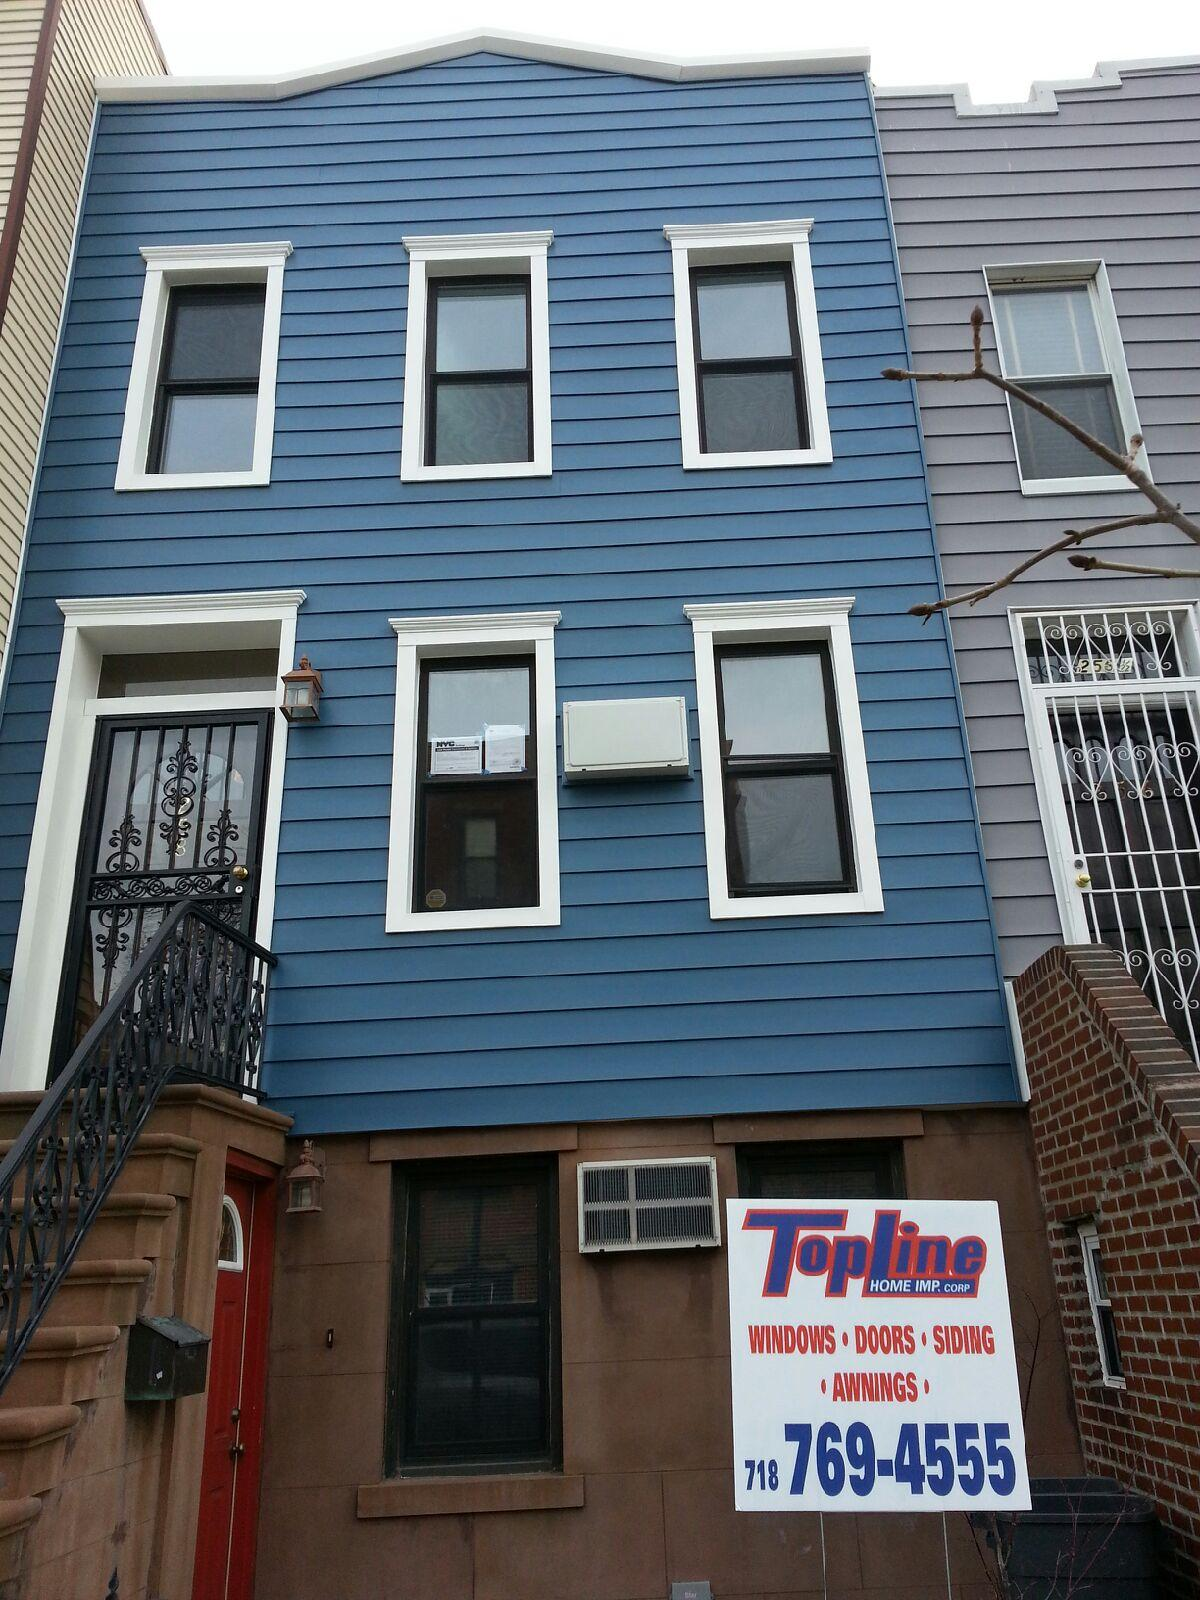 siding for house topline home improvement new york ny 10032